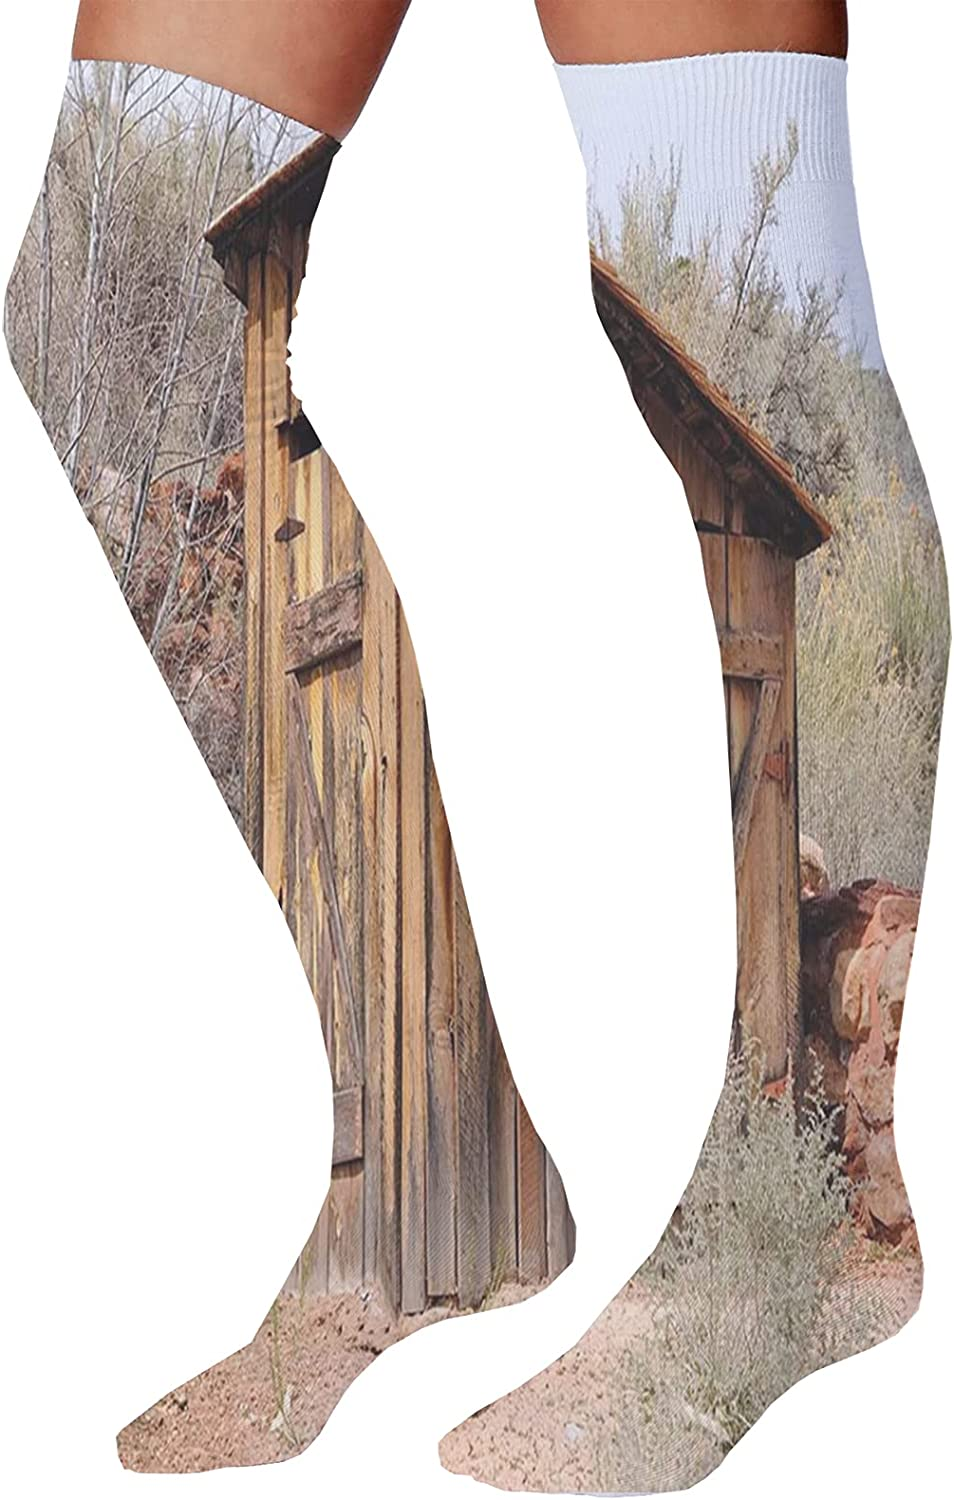 Men's and Women's Fun Socks,Old Withered Oak Crown Without Leaves Tree Branches Rustic Theme Illustration